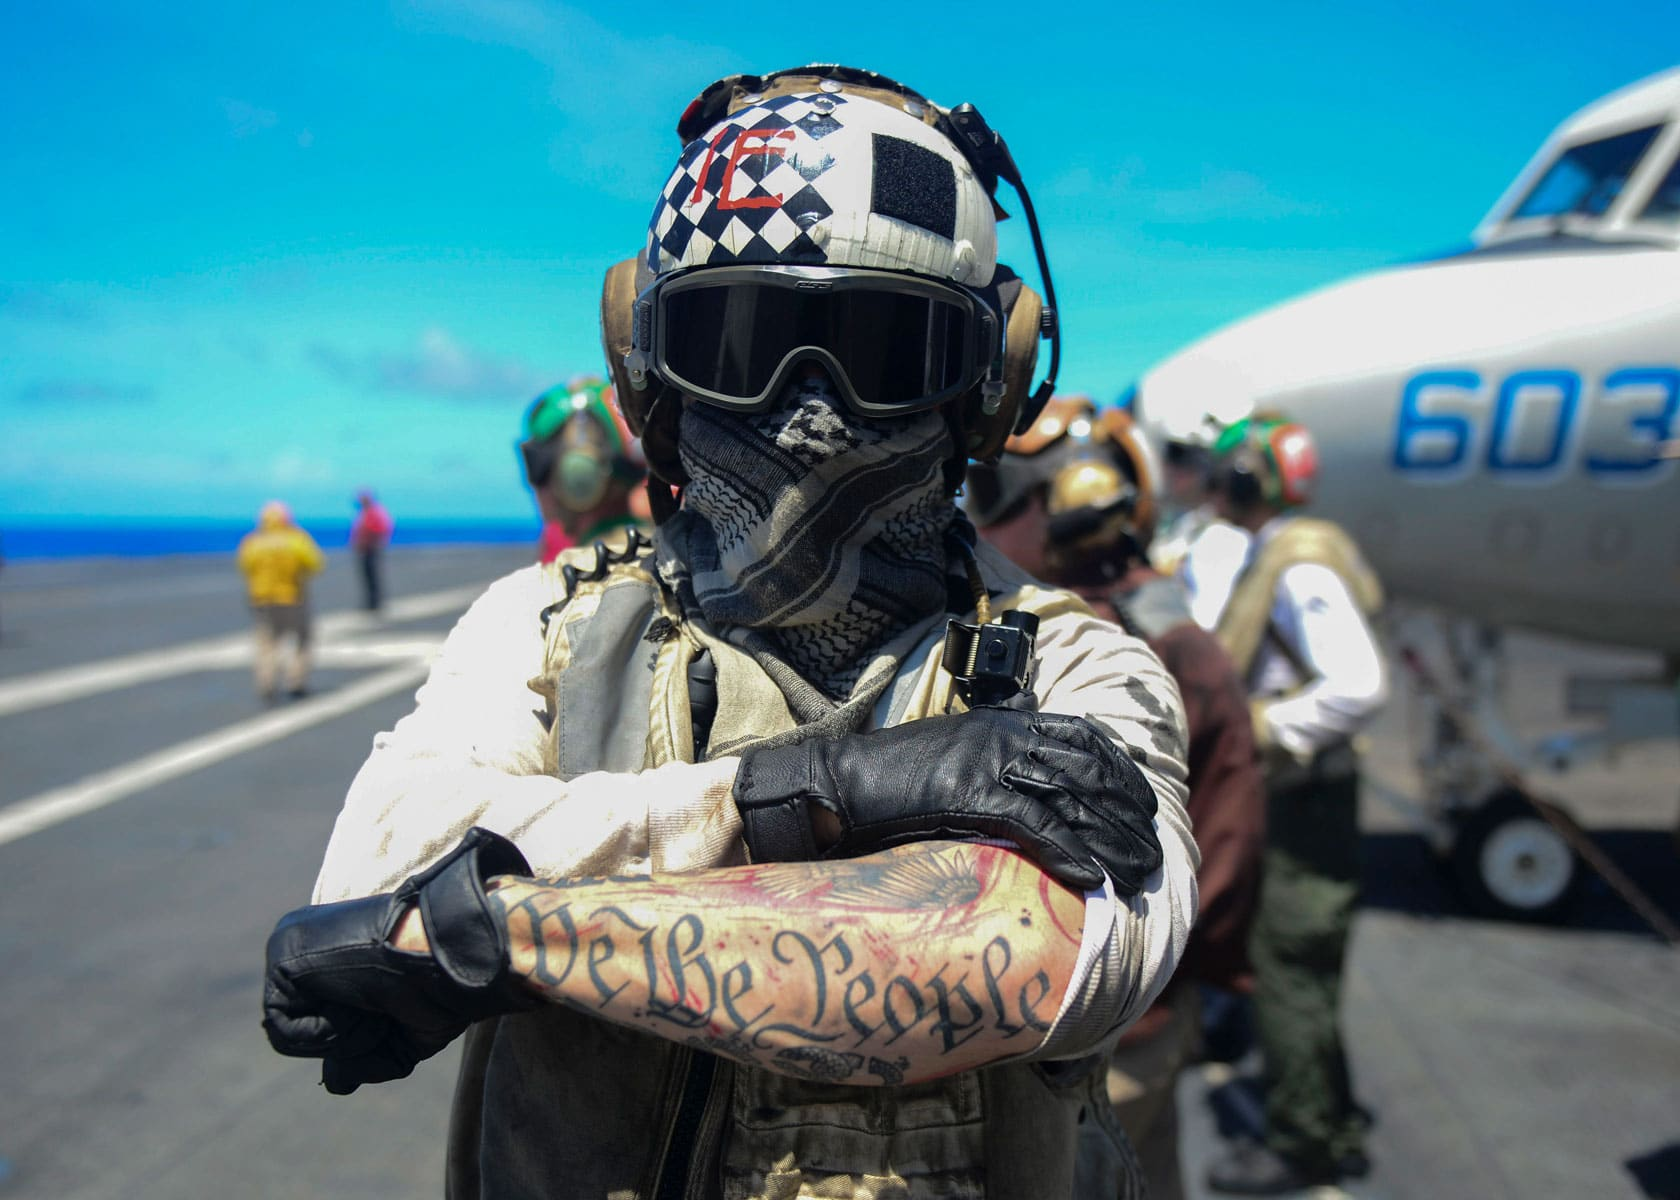 Aviation Electrician's Mate 2nd Class Lucas Mclean, assigned to the United States Navy Black Knights of Strike Fighter Squadron (VFA) 154, displays his patriotic body art aboard the aircraft carrier USS Nimitz.